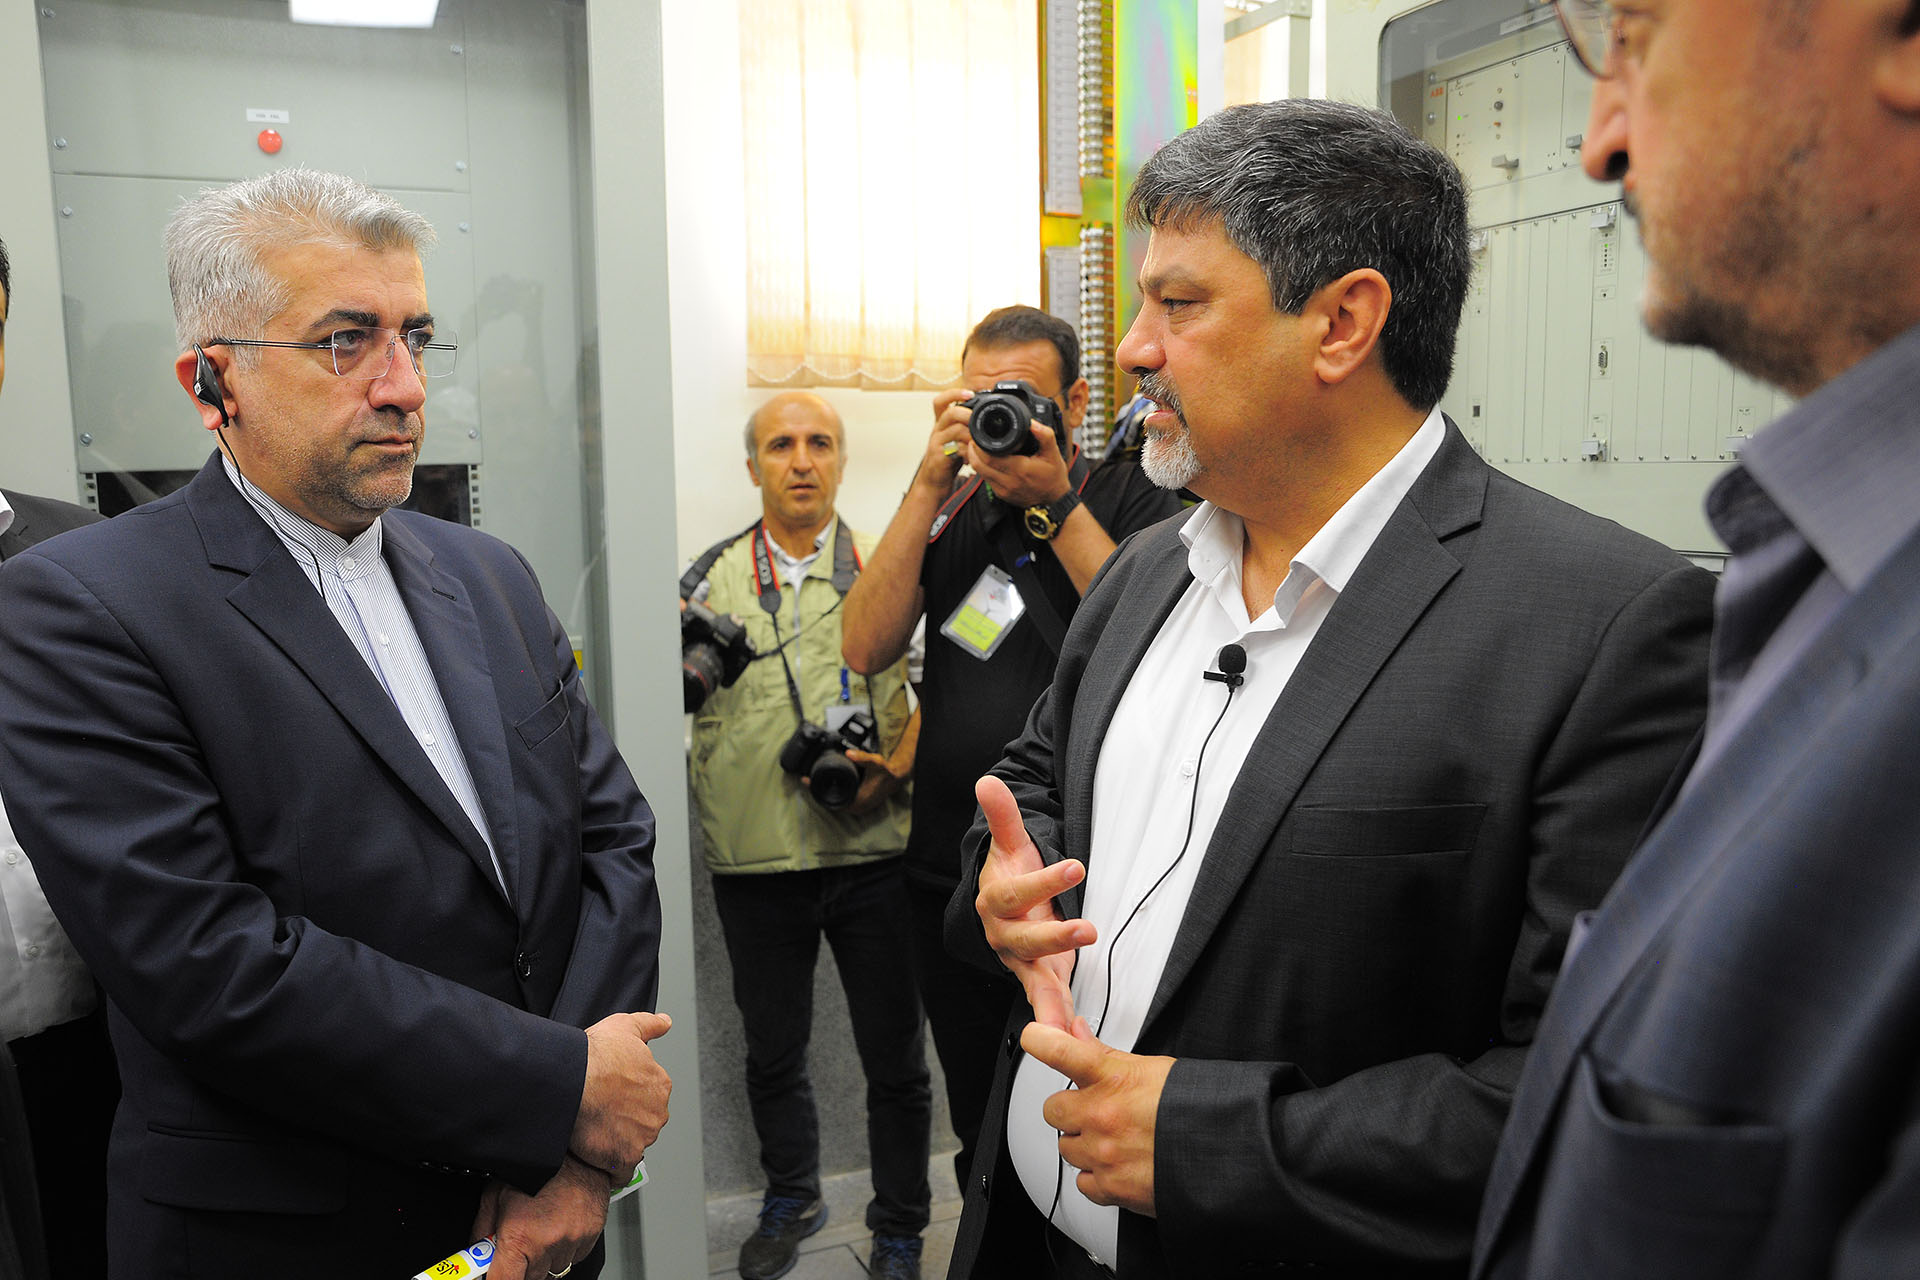 The Largest Wind Power Plant in Iran was Commissioned in Presence of the Minister of Energy